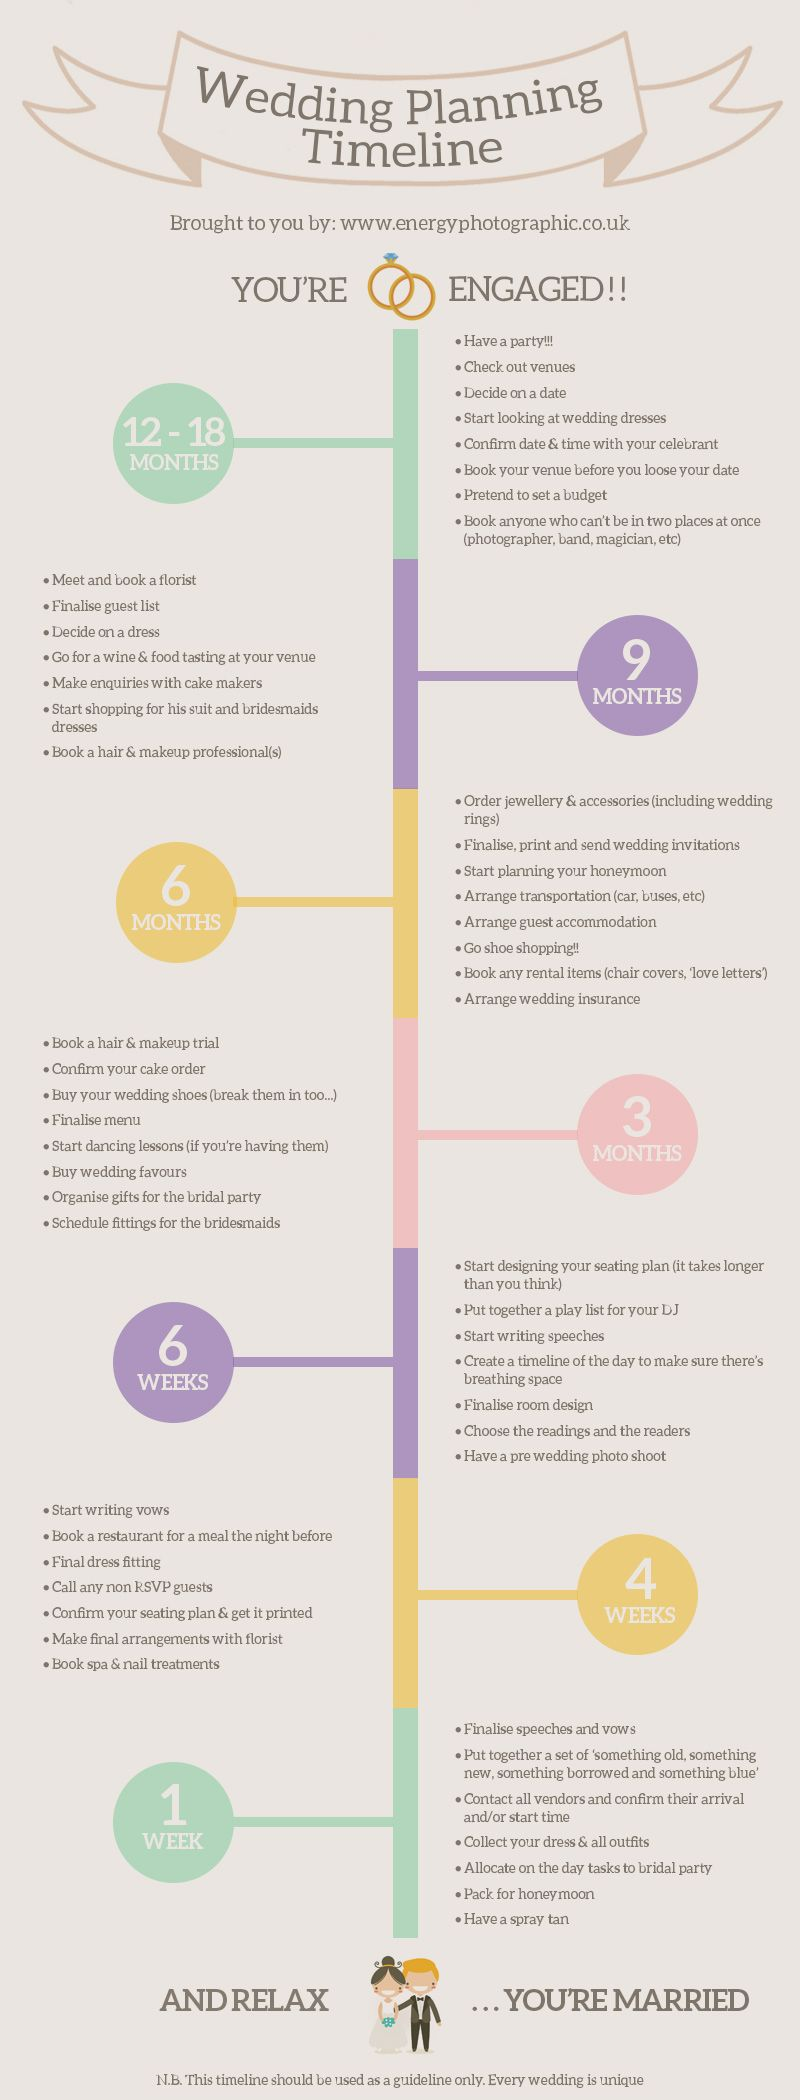 Wedding Planning Checklist Timeline